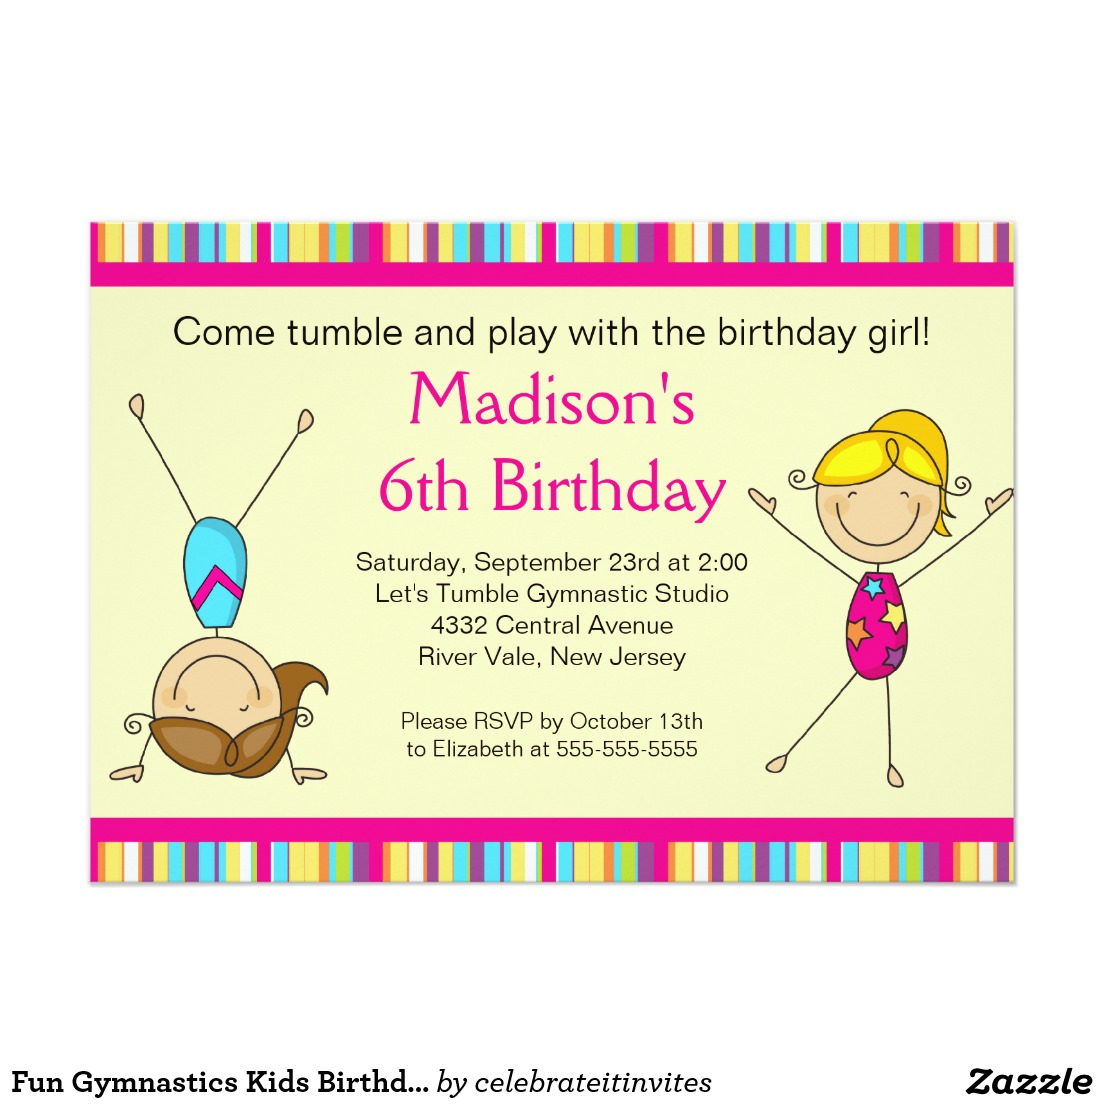 kids birthday party invitations with photo ; childrens-birthday-party-invitations-with-some-beautification-for-your-Birthday-Invitation-Templates-to-serve-elegant-environment-15